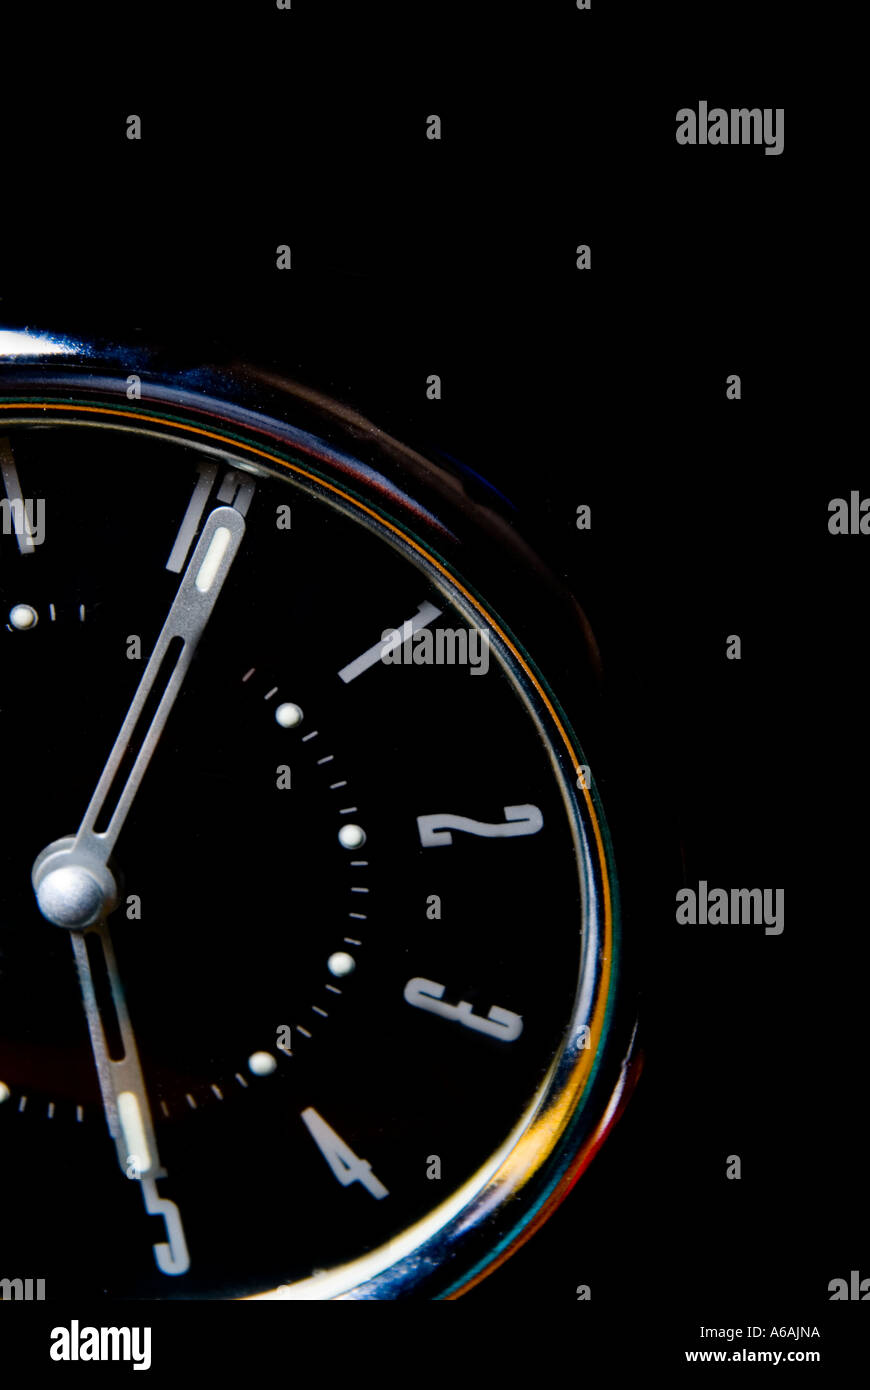 5 minute warning stock photos 5 minute warning stock images alamy